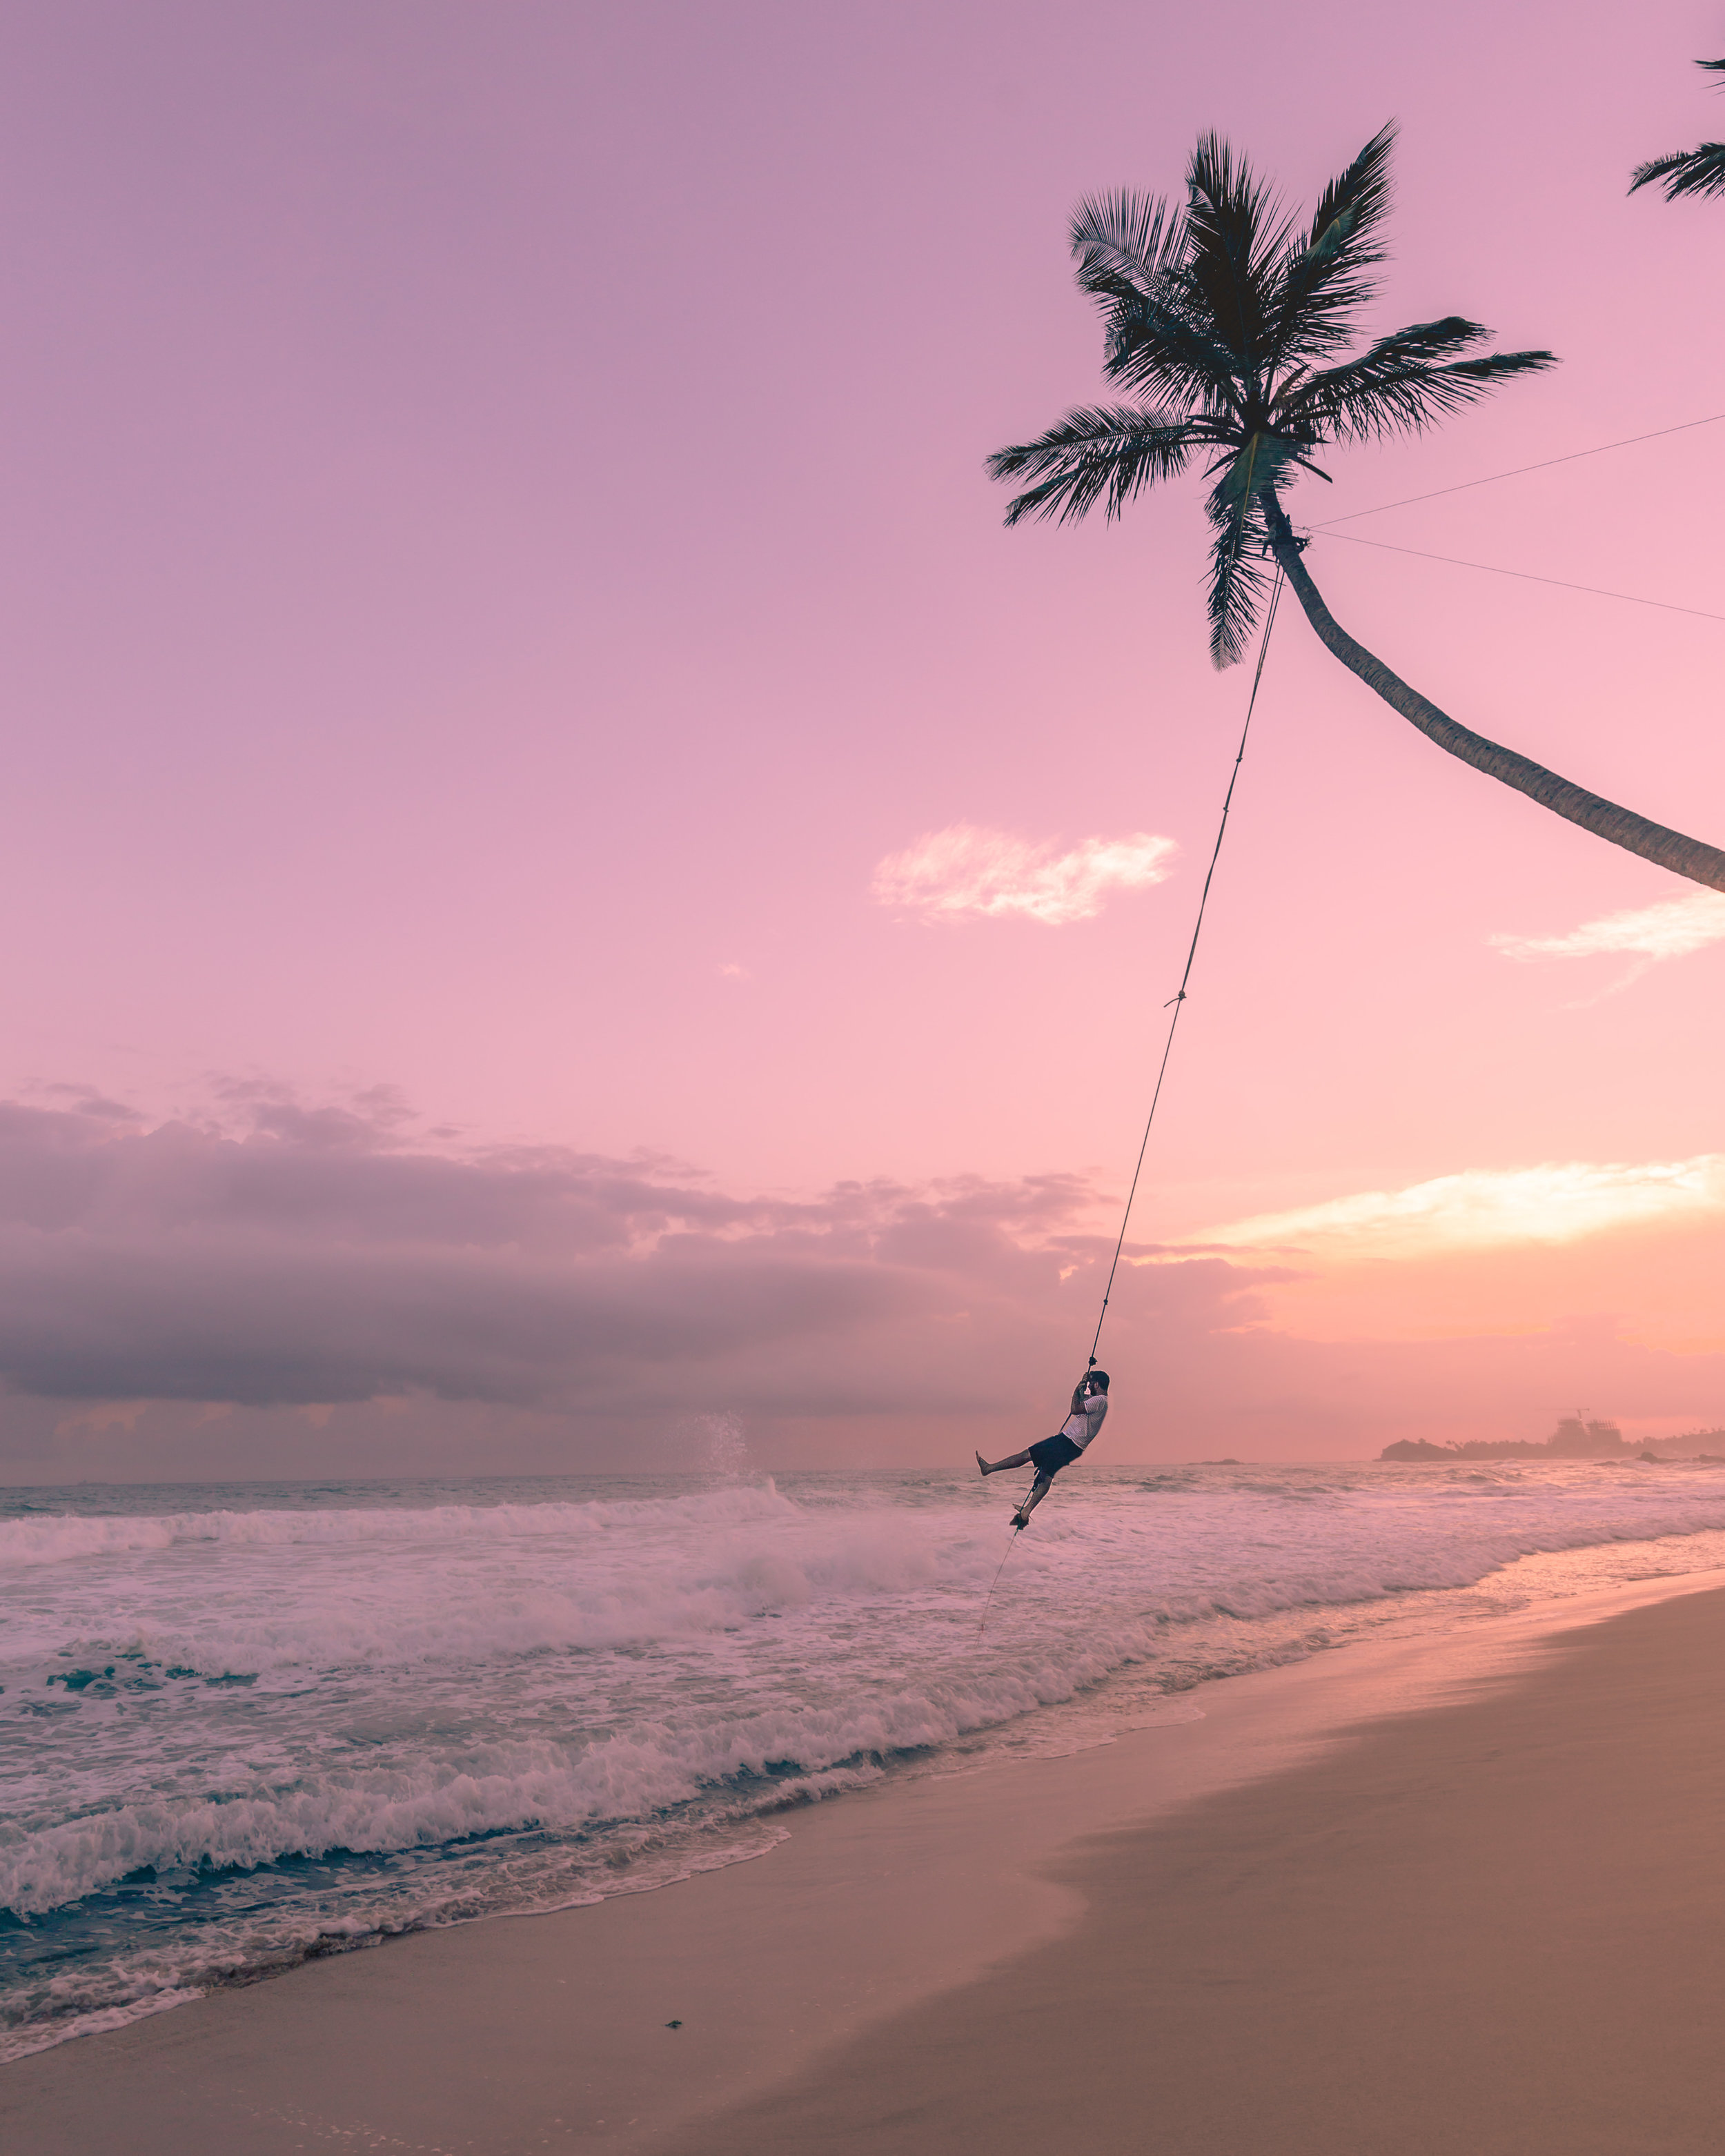 The rope swing at Dalawella Beach, Sri Lanka